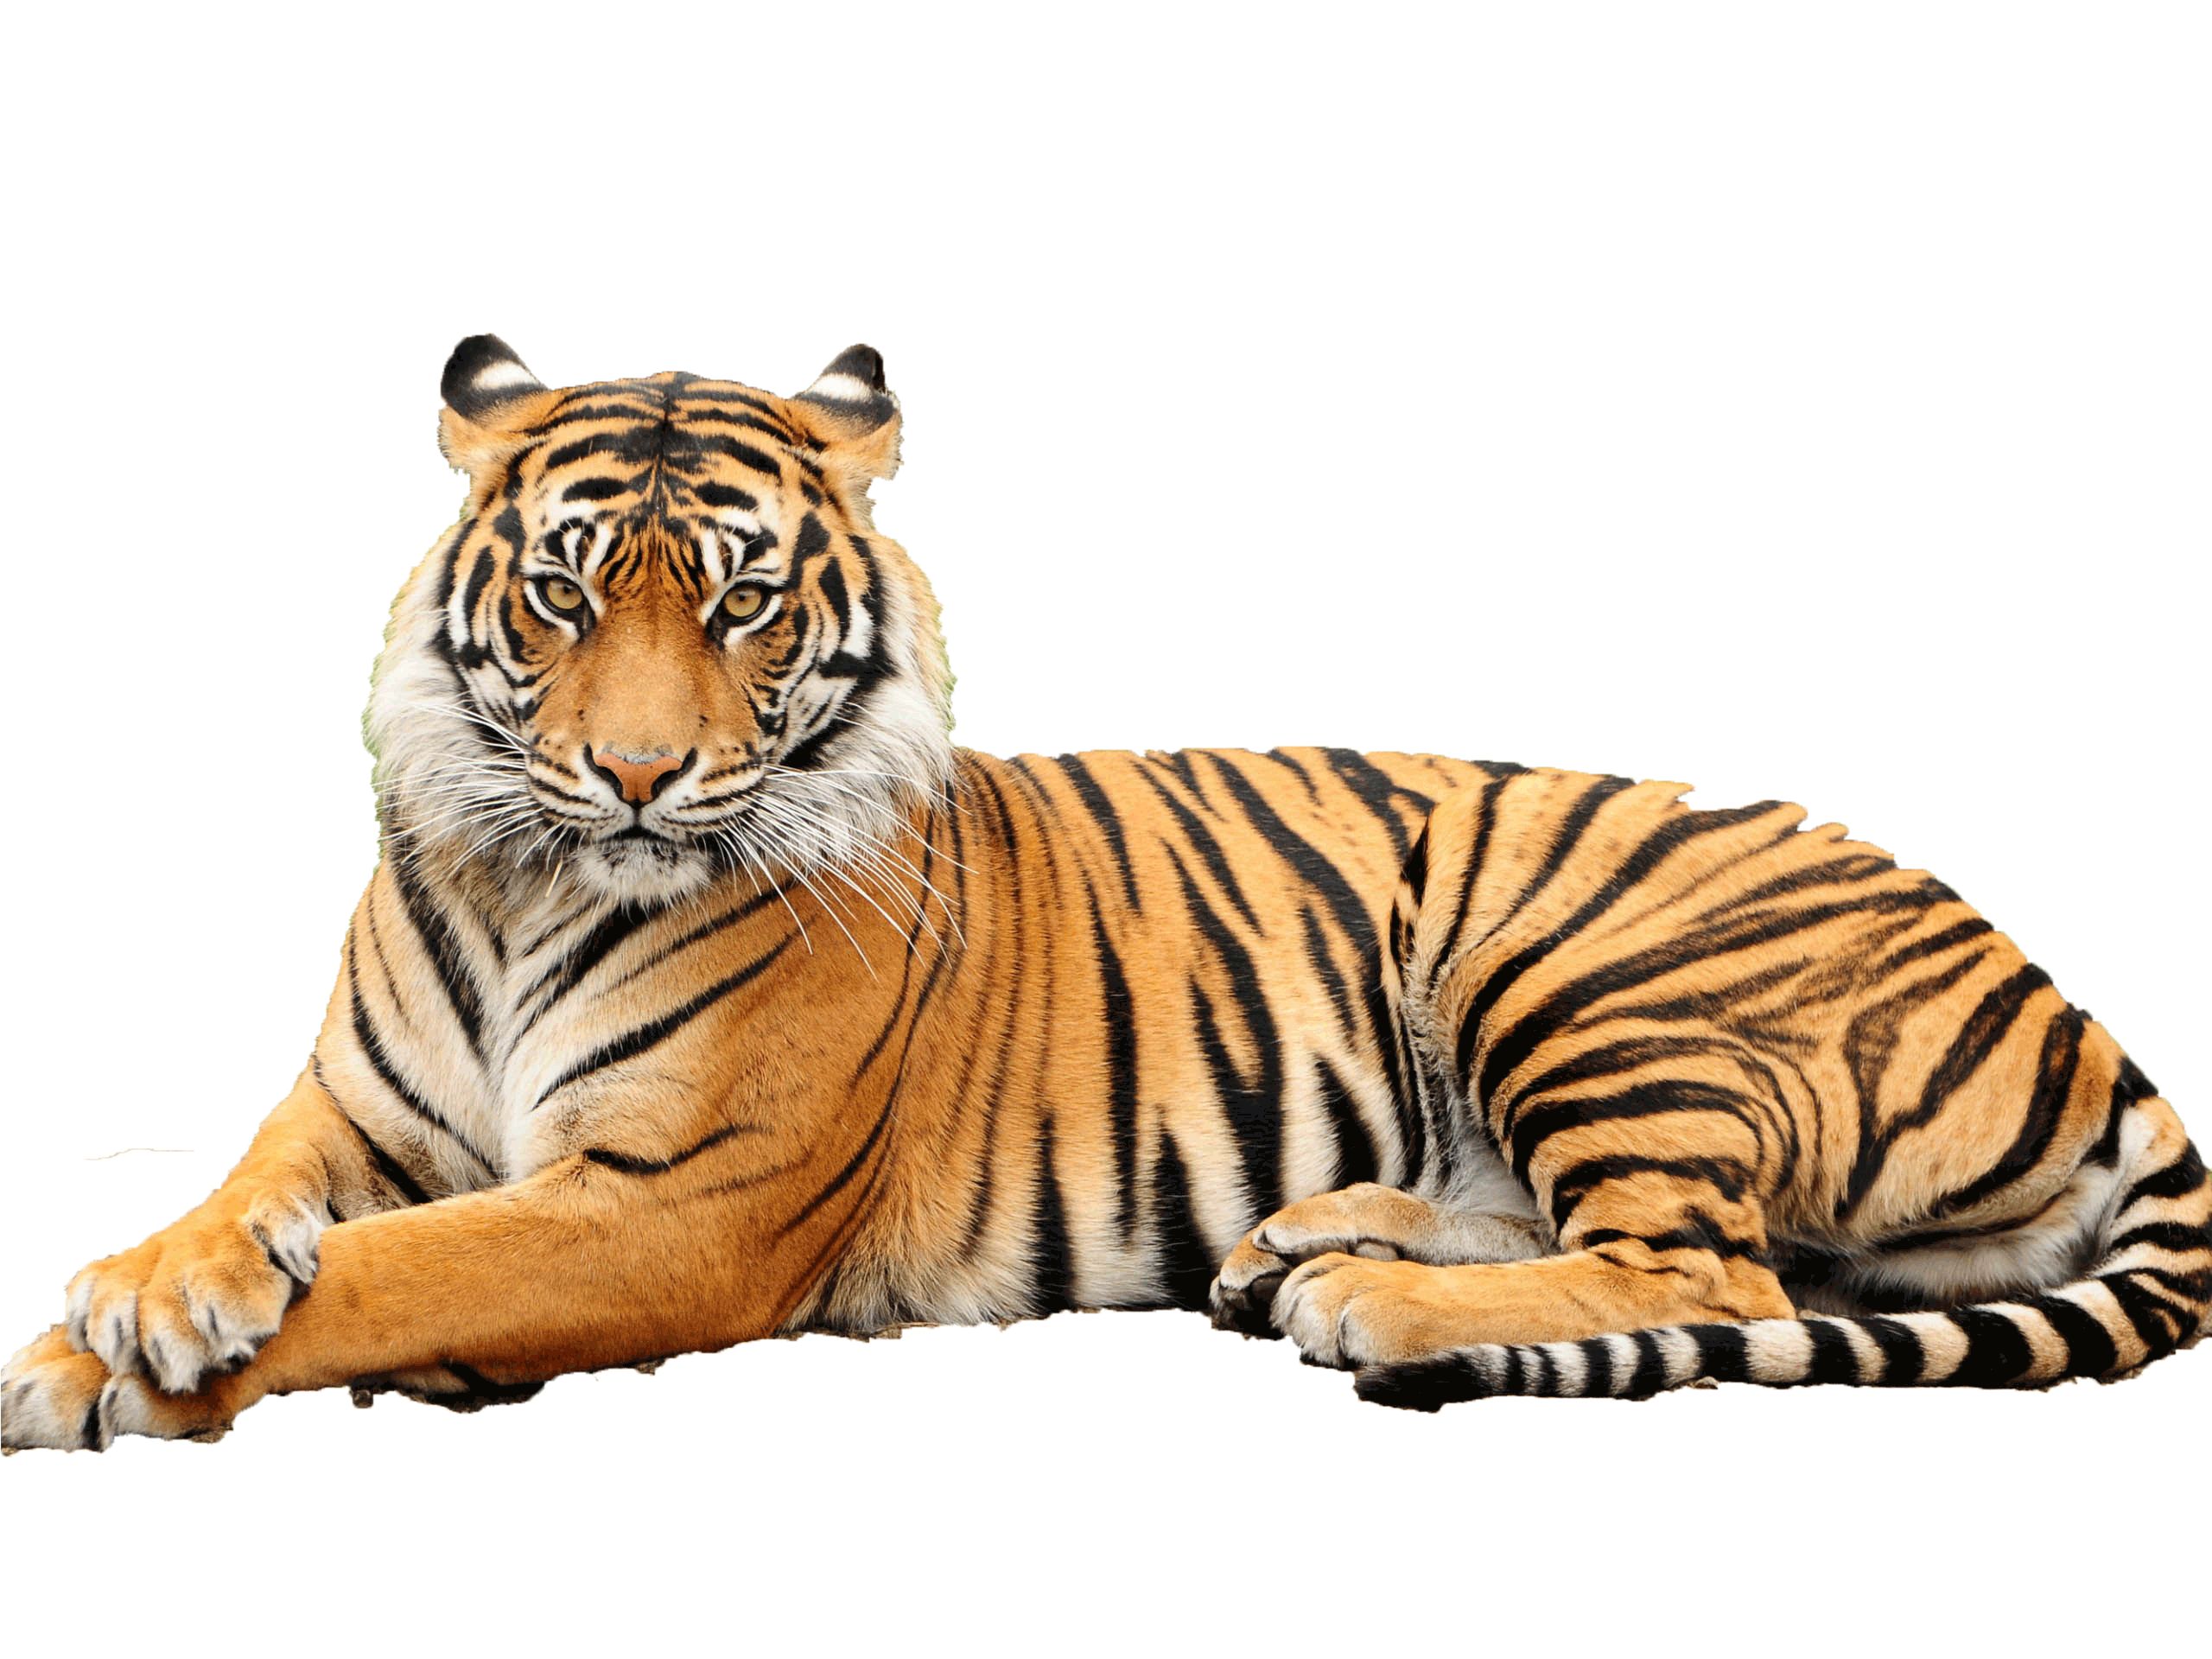 Transparent bg tiger. Png pictures free icons